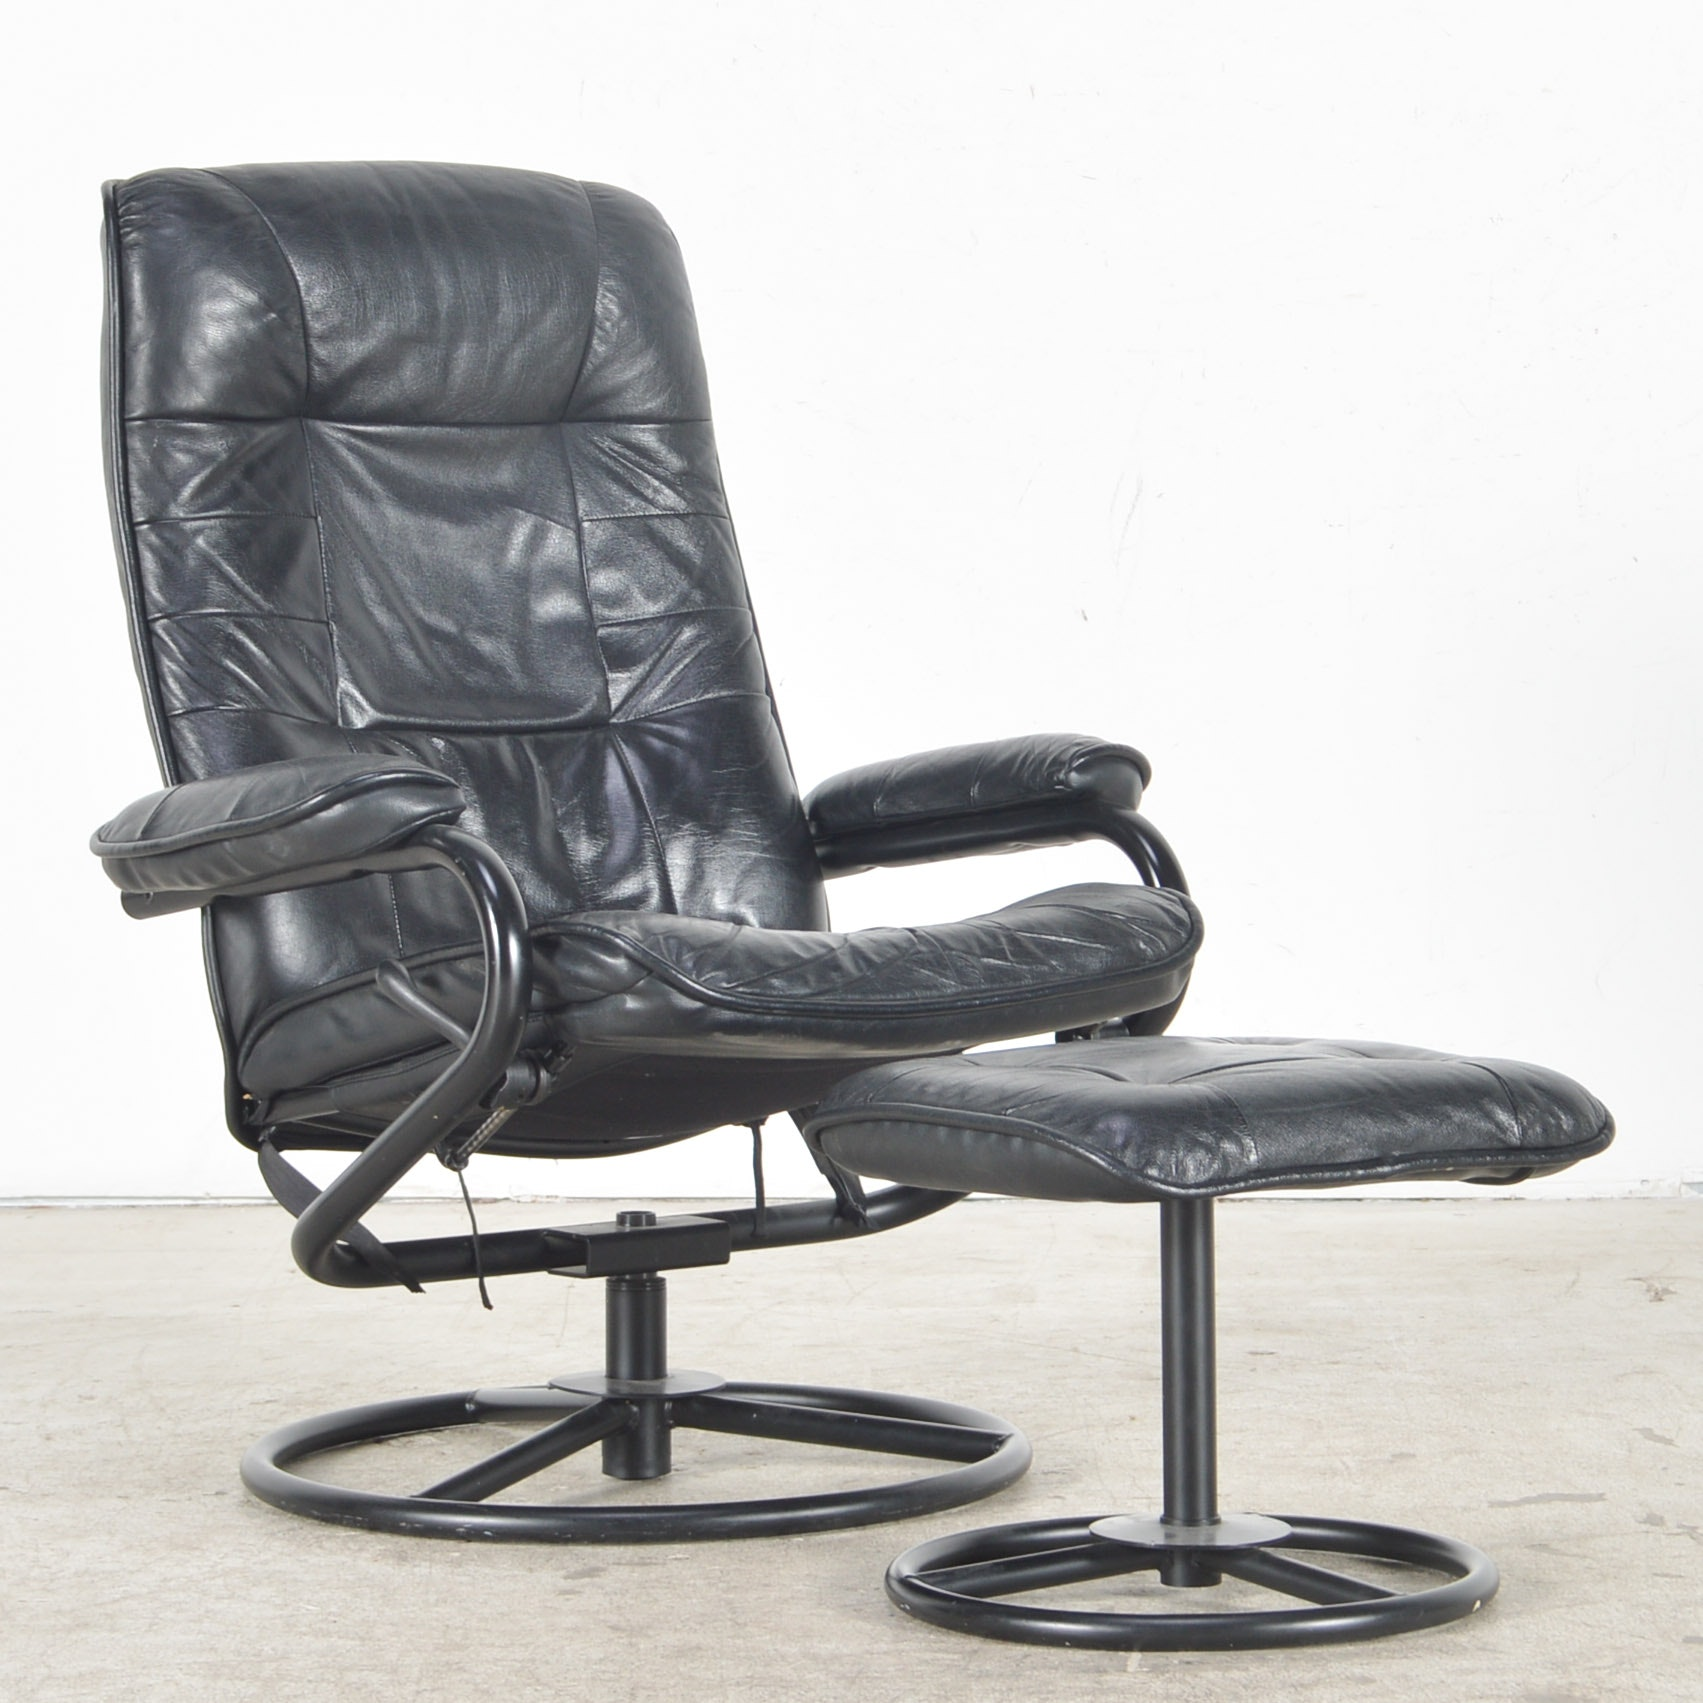 ChairWorks Reclining Leather Lounge Chair with Ottoman